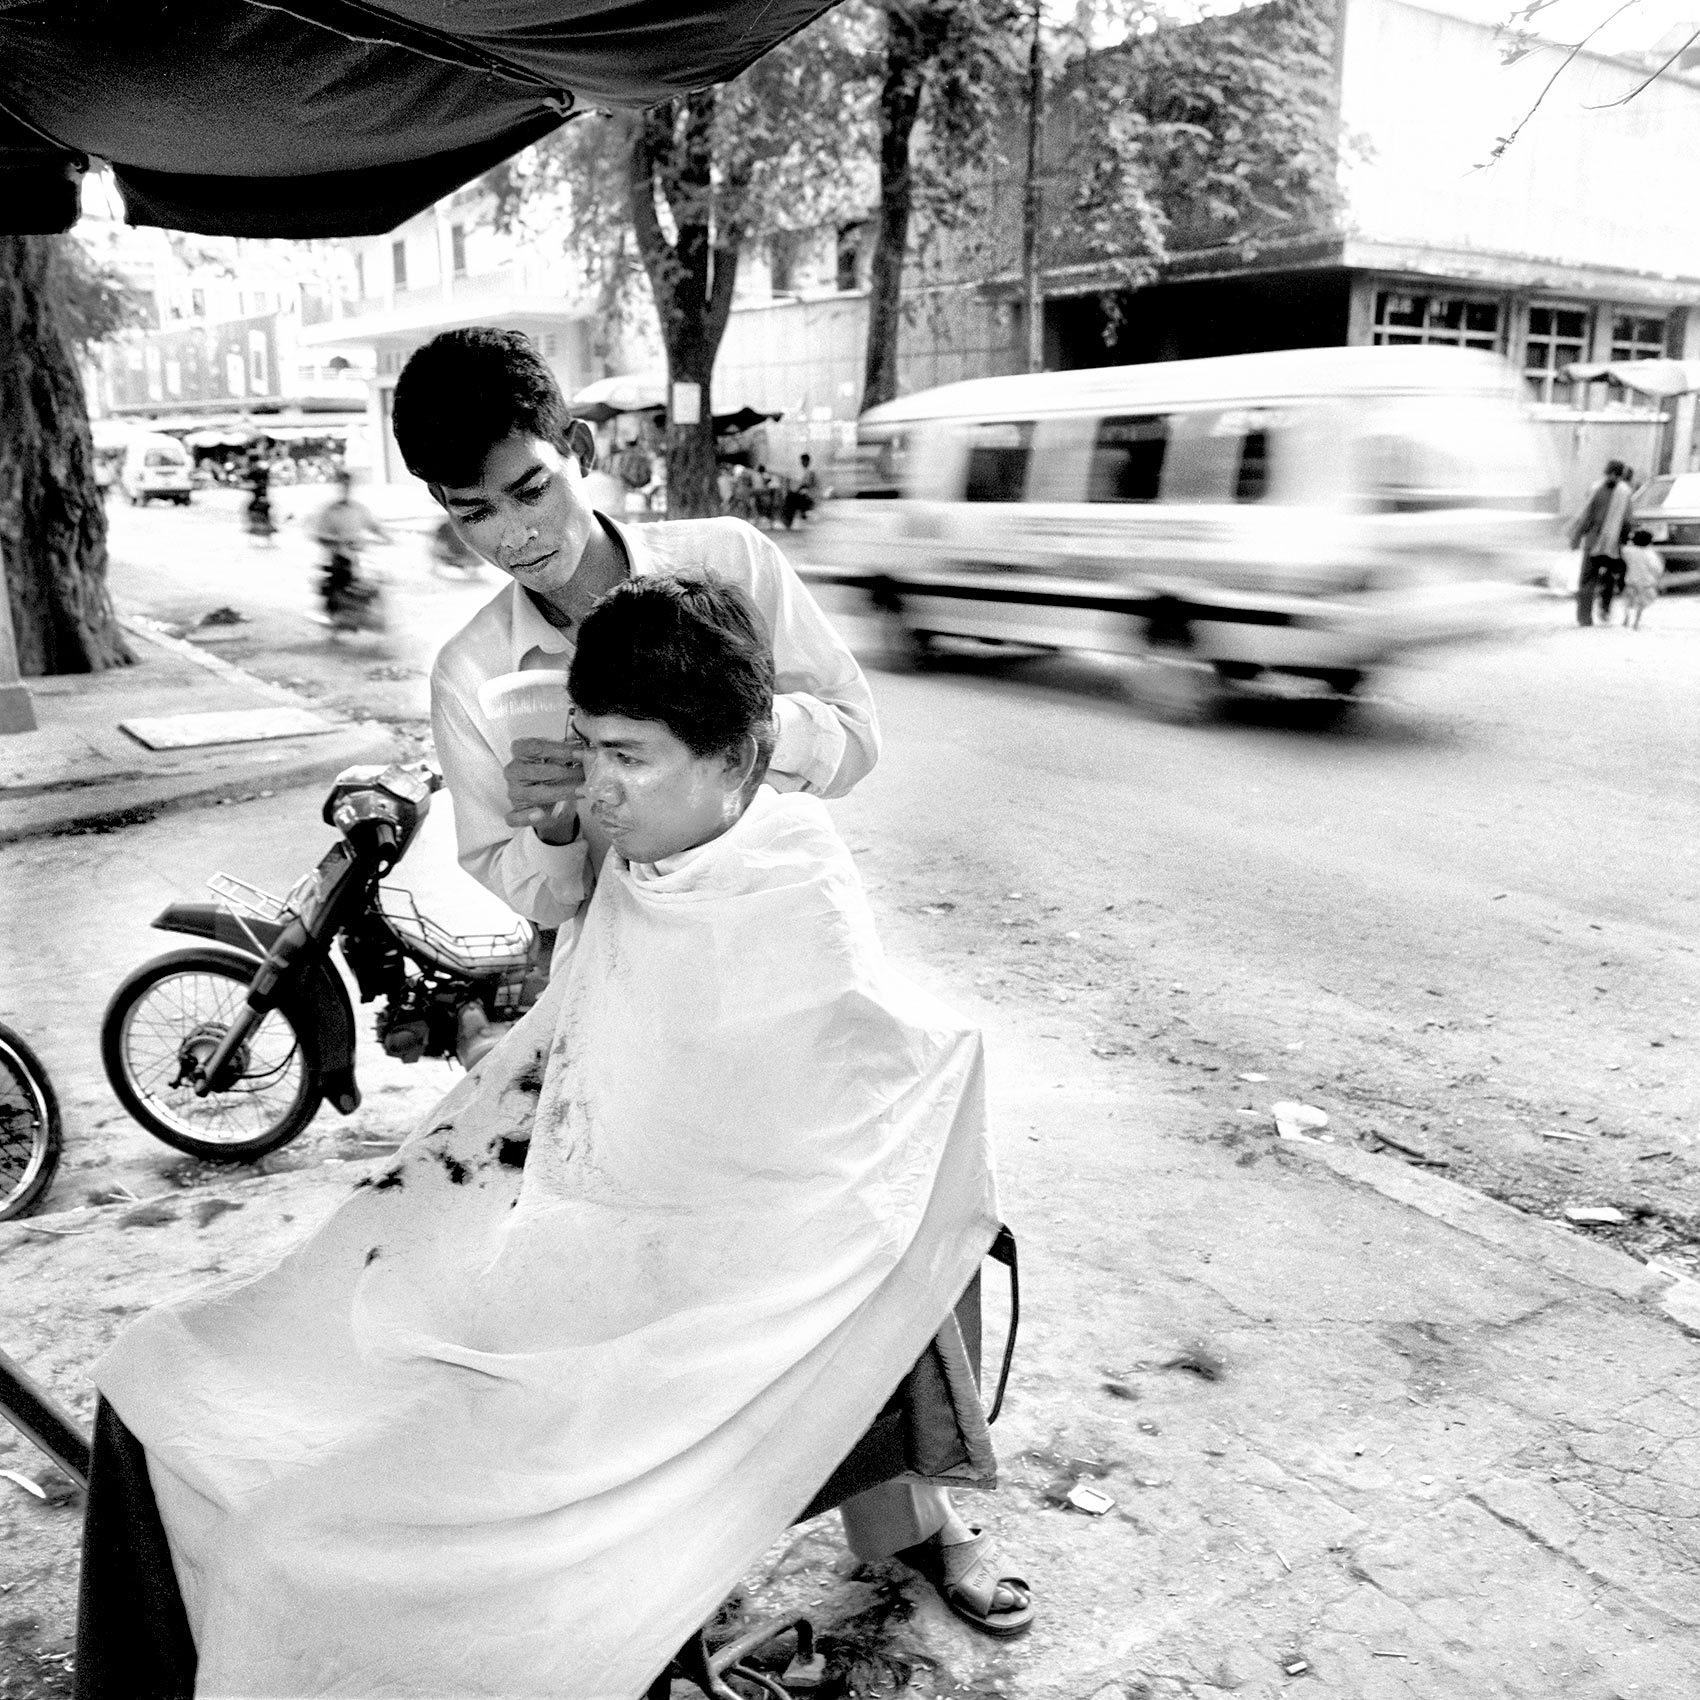 a-barber-in-angkor-wat-cuts-his-clients-hair-on-the-street